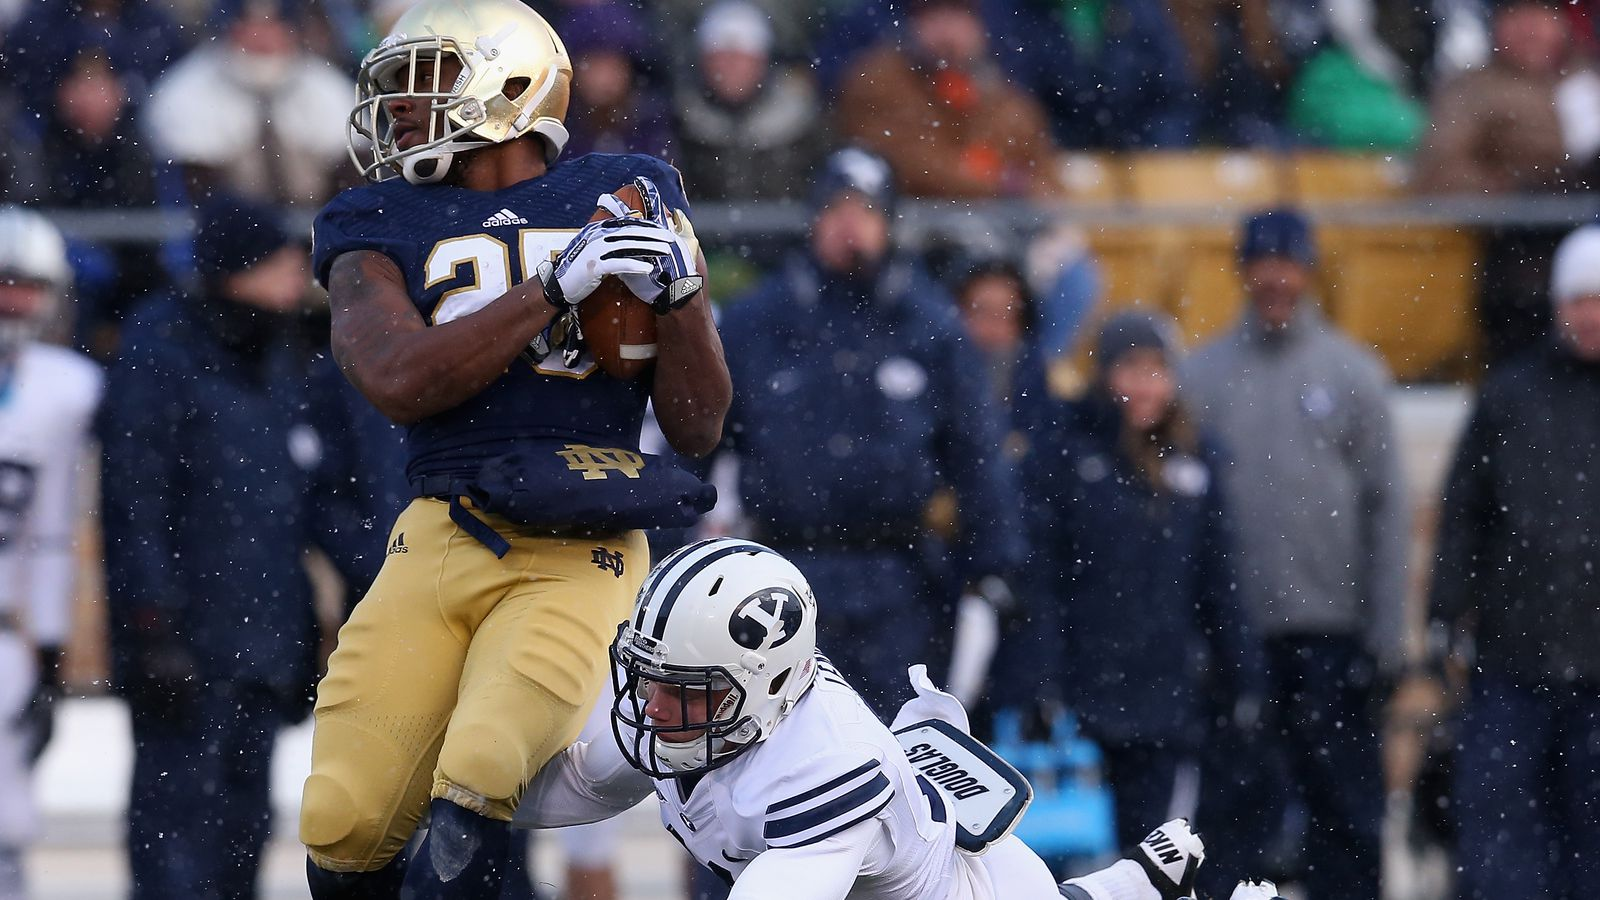 Notre Dame Football: Irish Game At BYU Looking Increasingly Unlikely - One Foot Down